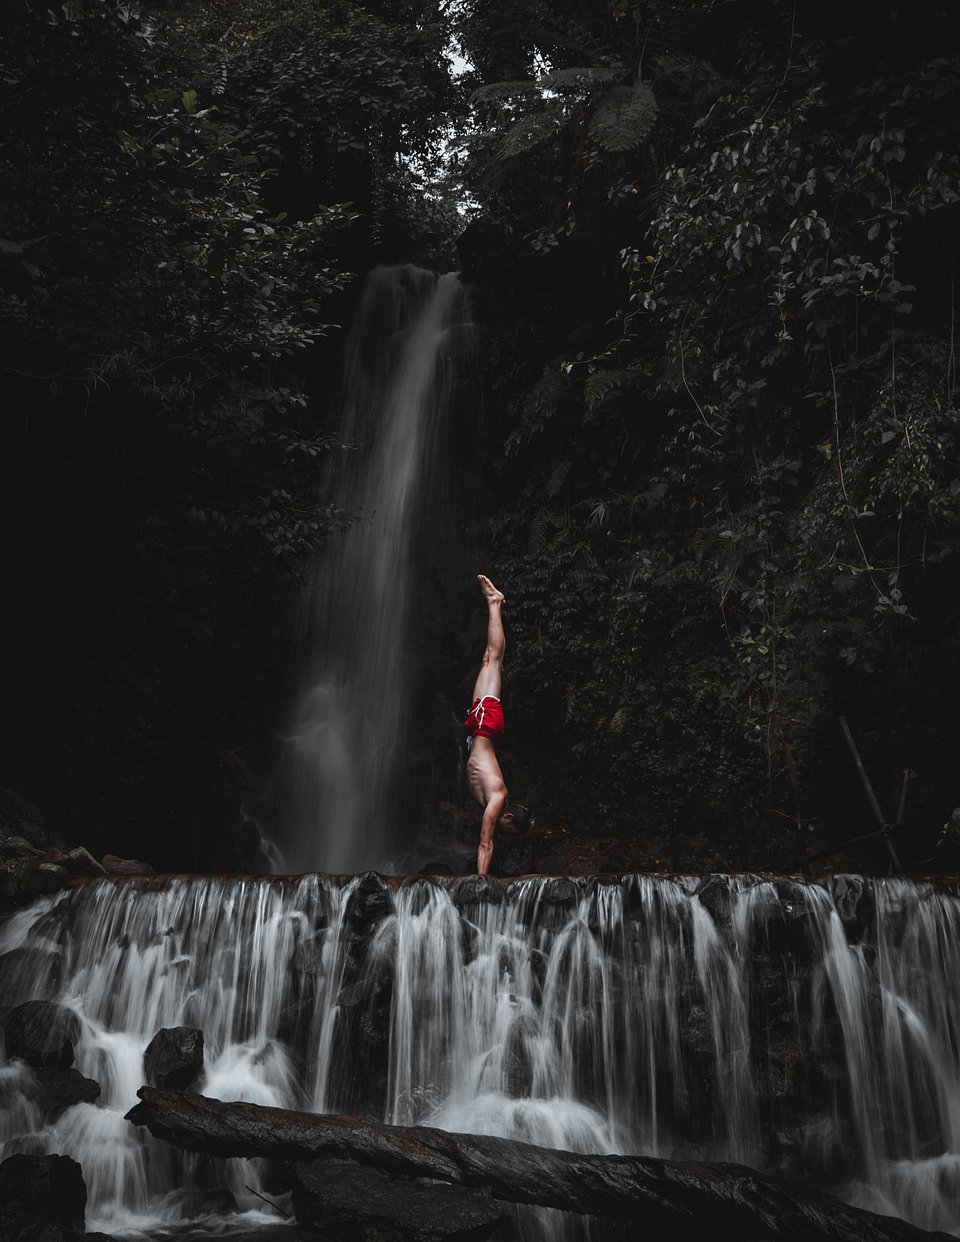 Location: Ngumpet falls, Bogor, West Java, Indonesia